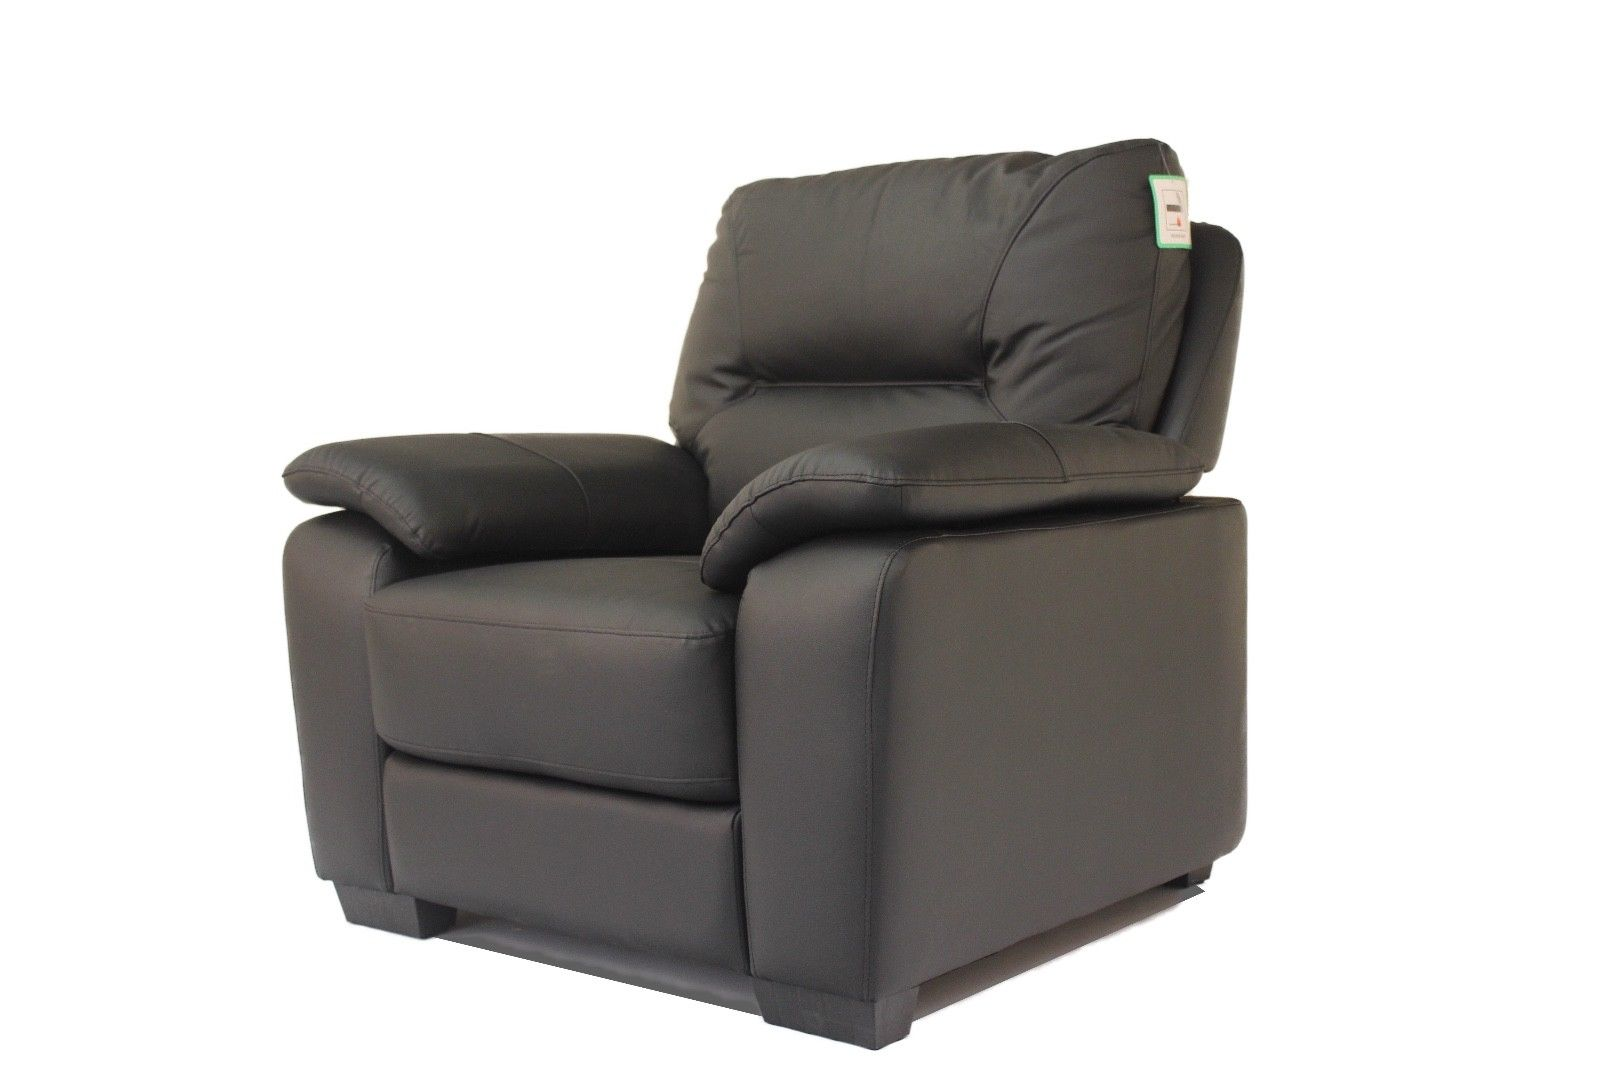 Lot 19 - Stamford BLACK Single Seat Real Leather Chair - No Reserve